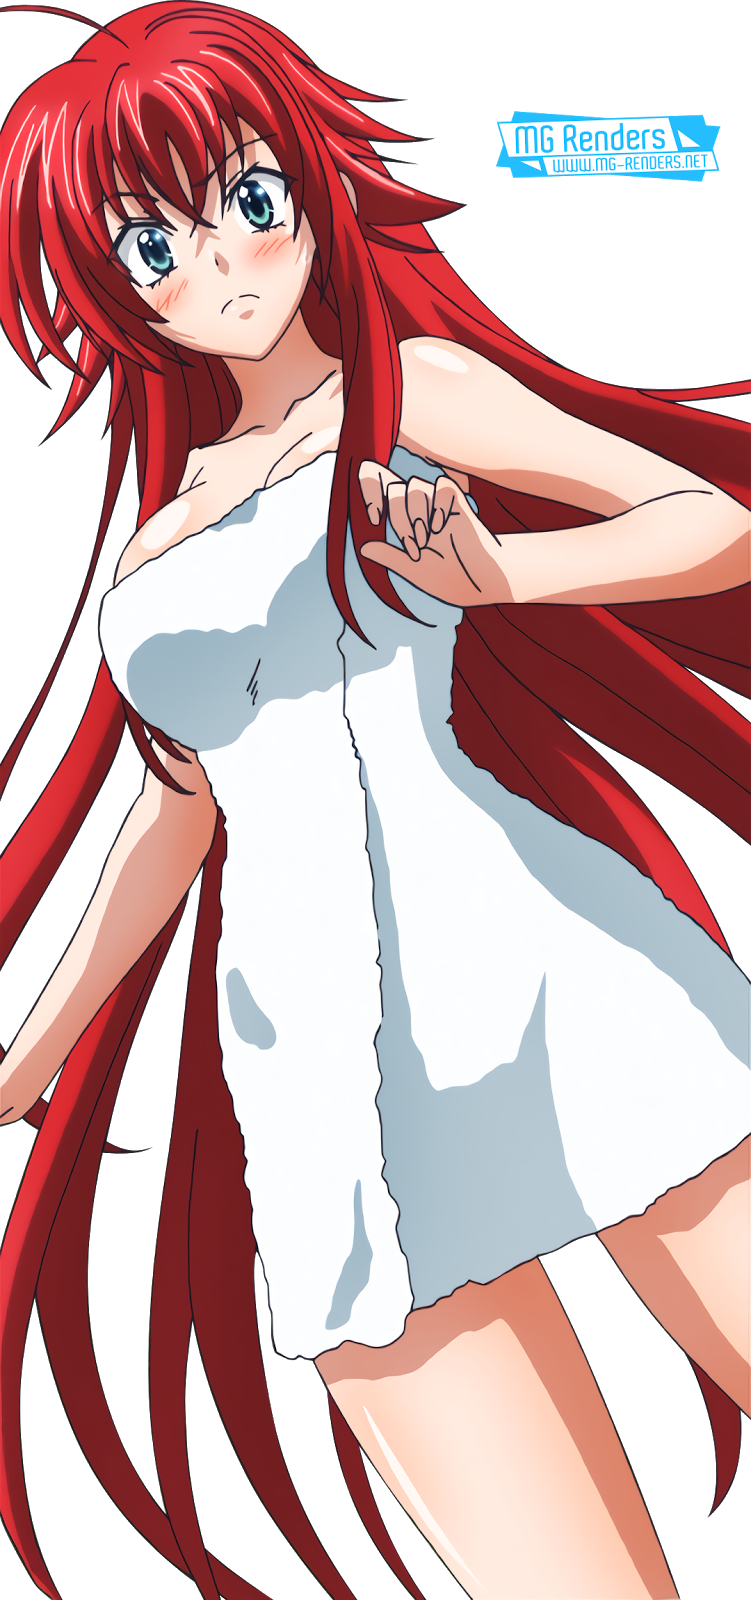 Tags: Anime, Render,  High School DxD, ハイスクールD×D, Haisukūru D×D,  Rias Gremory, リアス・グレモリー,  Towel, PNG, Image, Picture